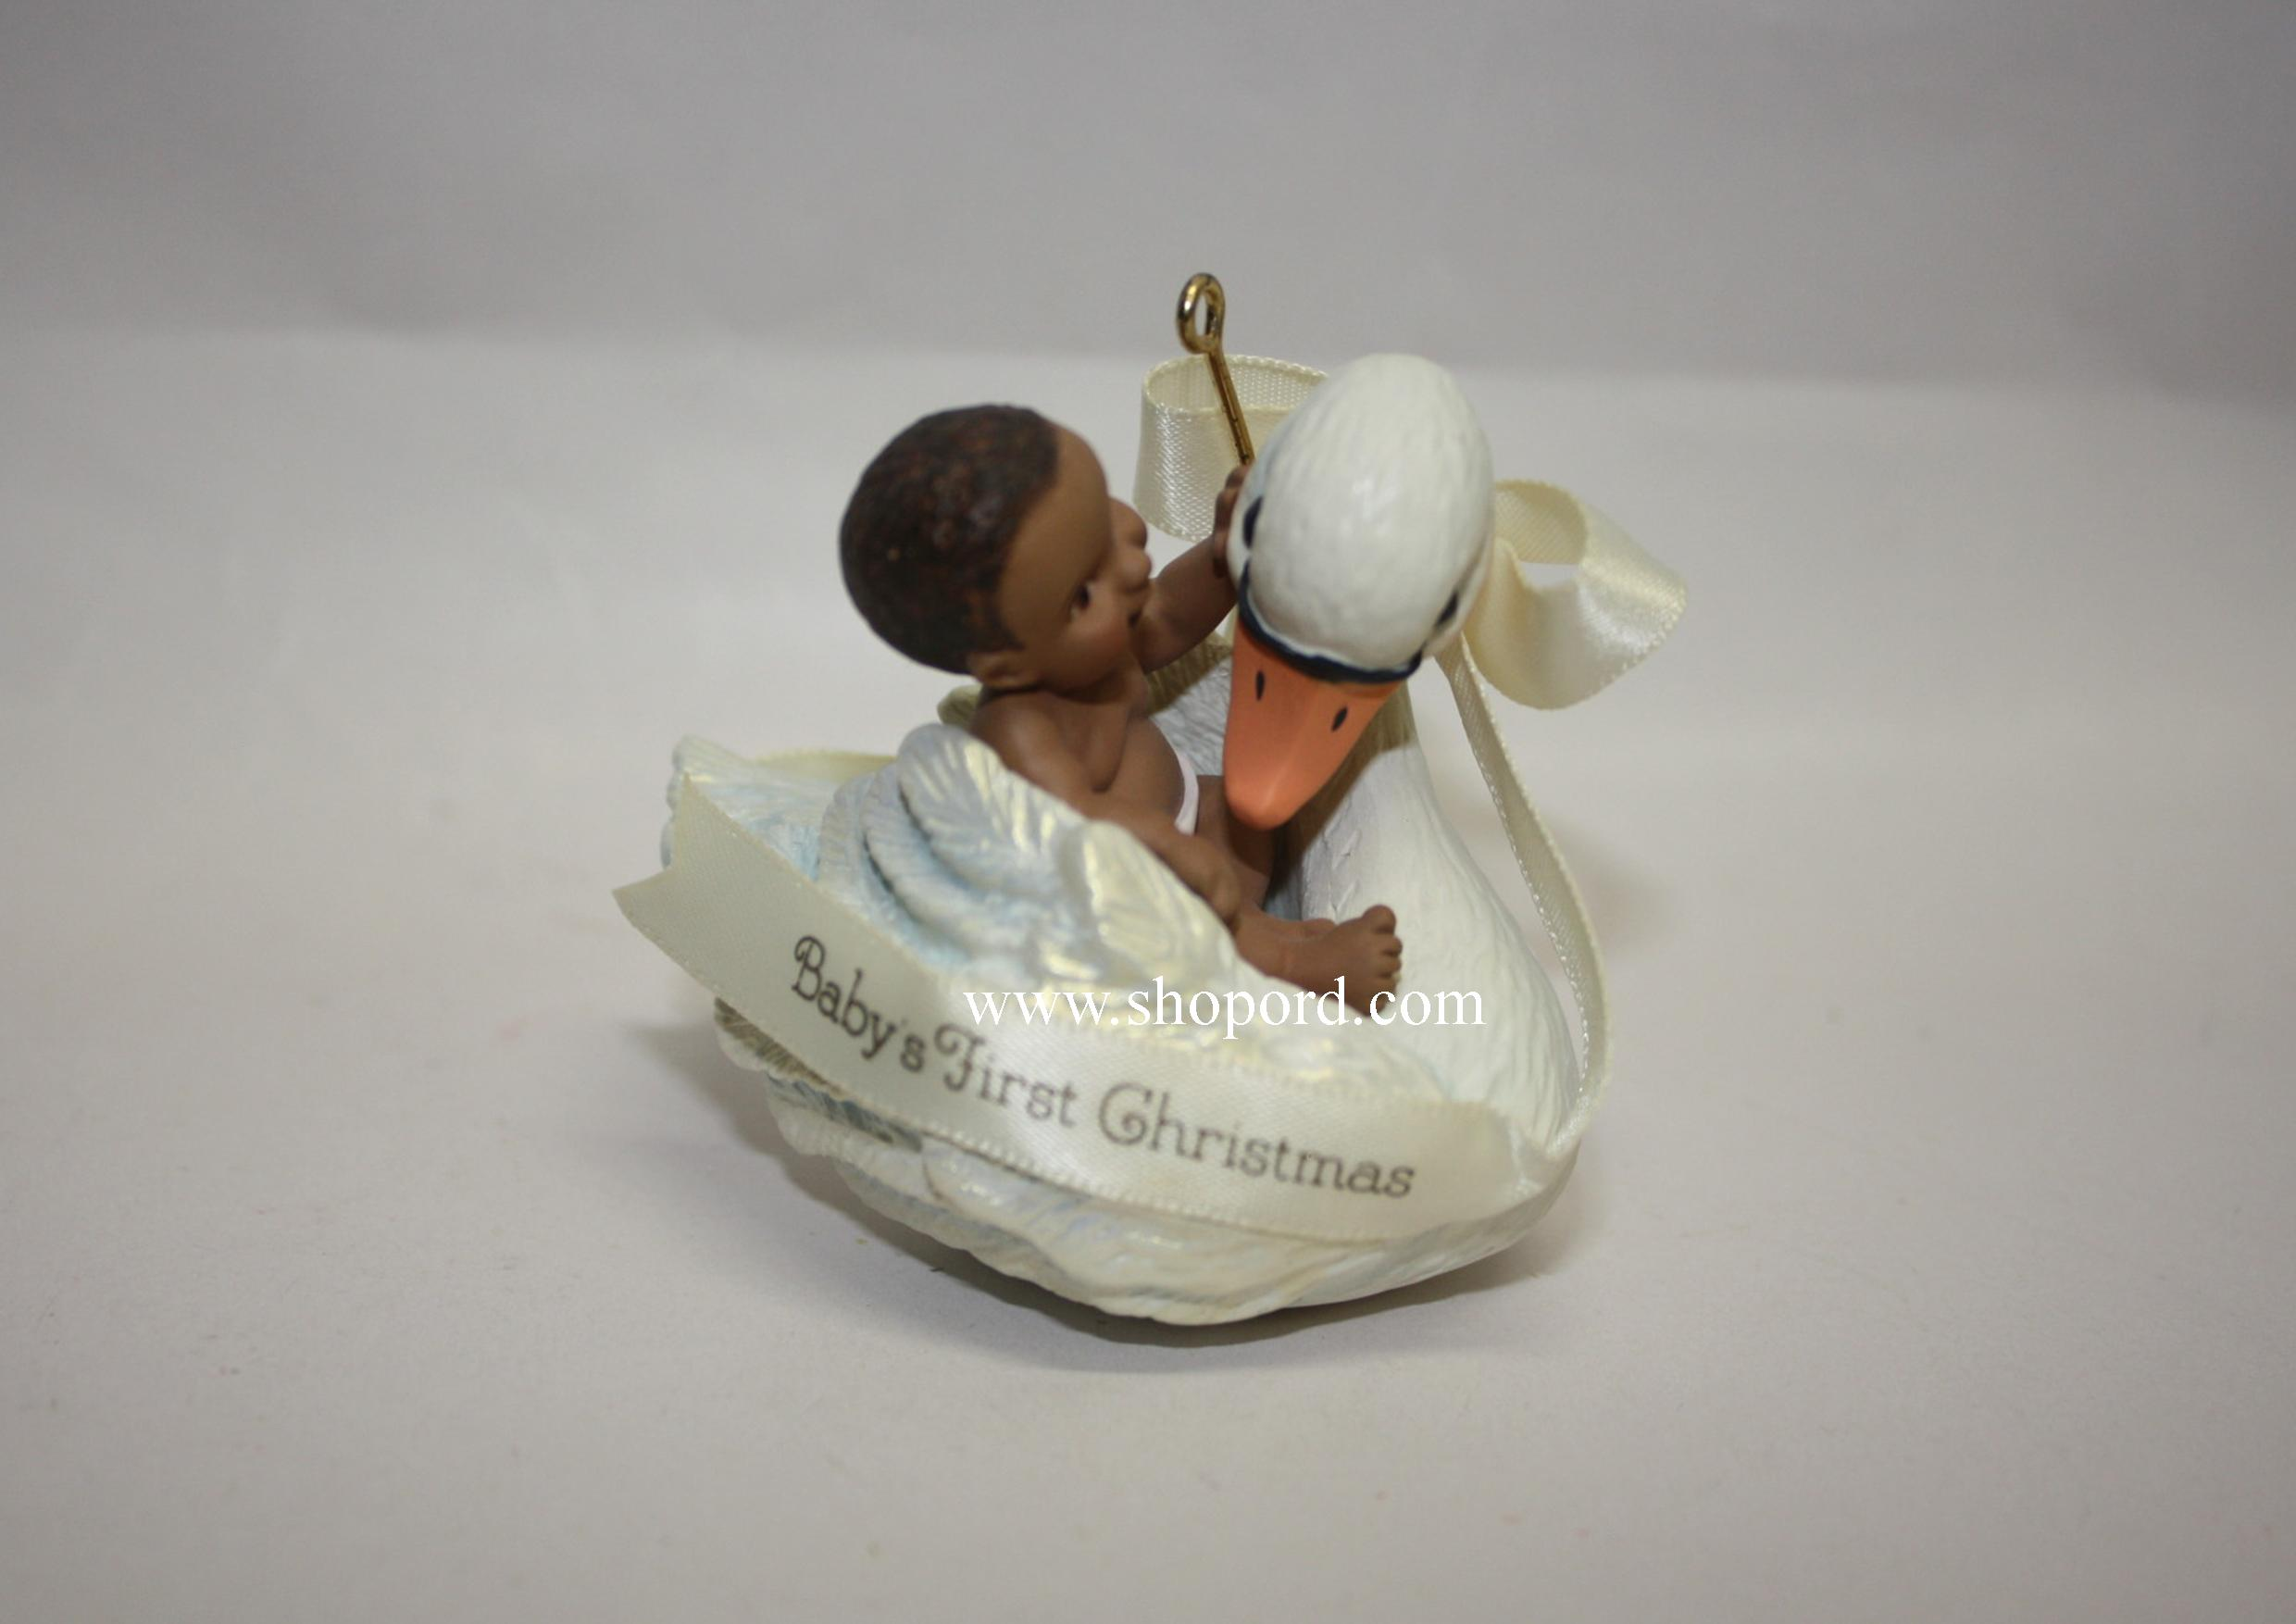 hallmark 2005 babys first christmas ornament african american qxg4602 - African American Christmas Decorations